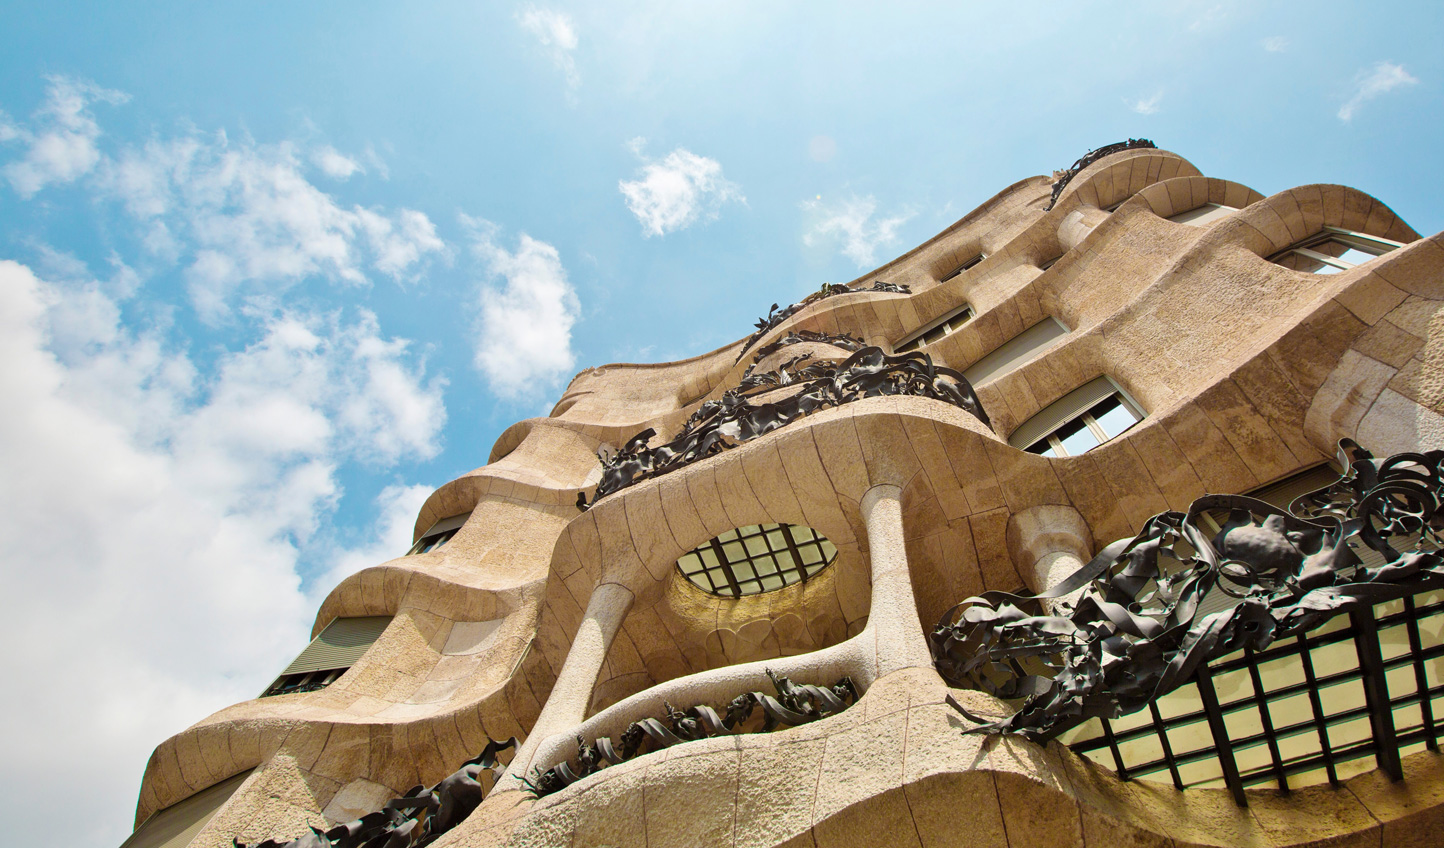 Take in Gaudi's signature style in Barcelona